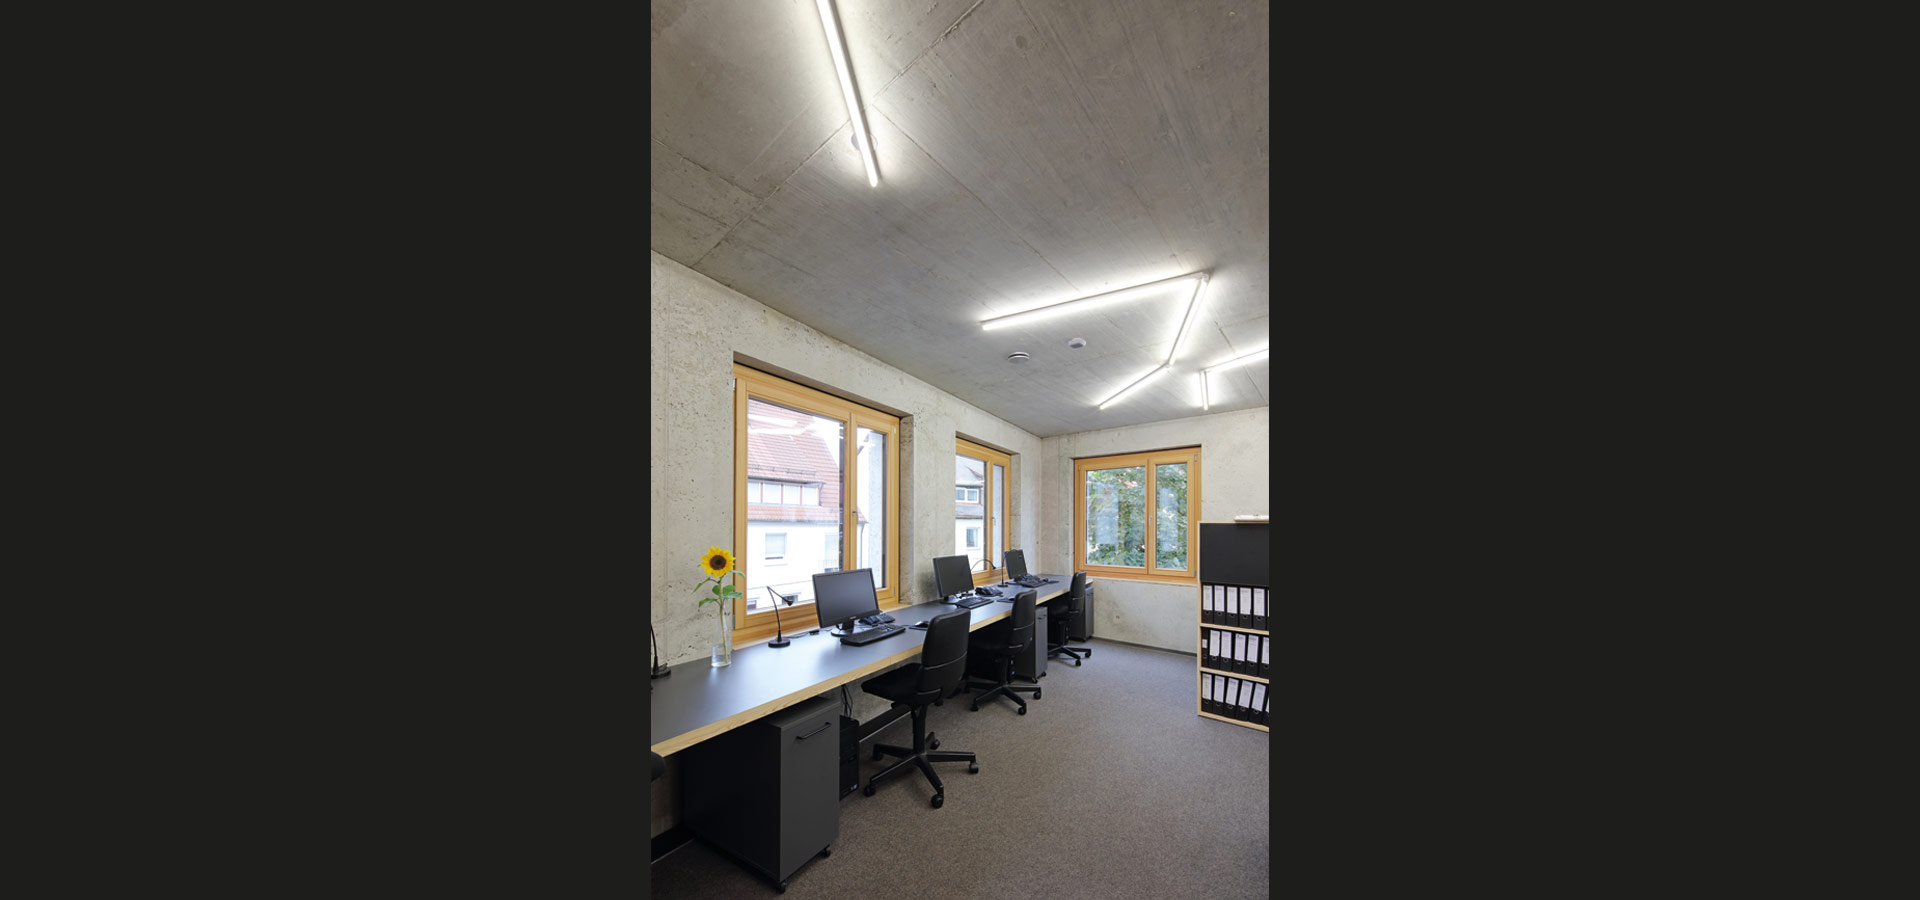 Bürobeleuchtung Led Top Office Lighting With Led Light Strip 20 3 From Luxsystem